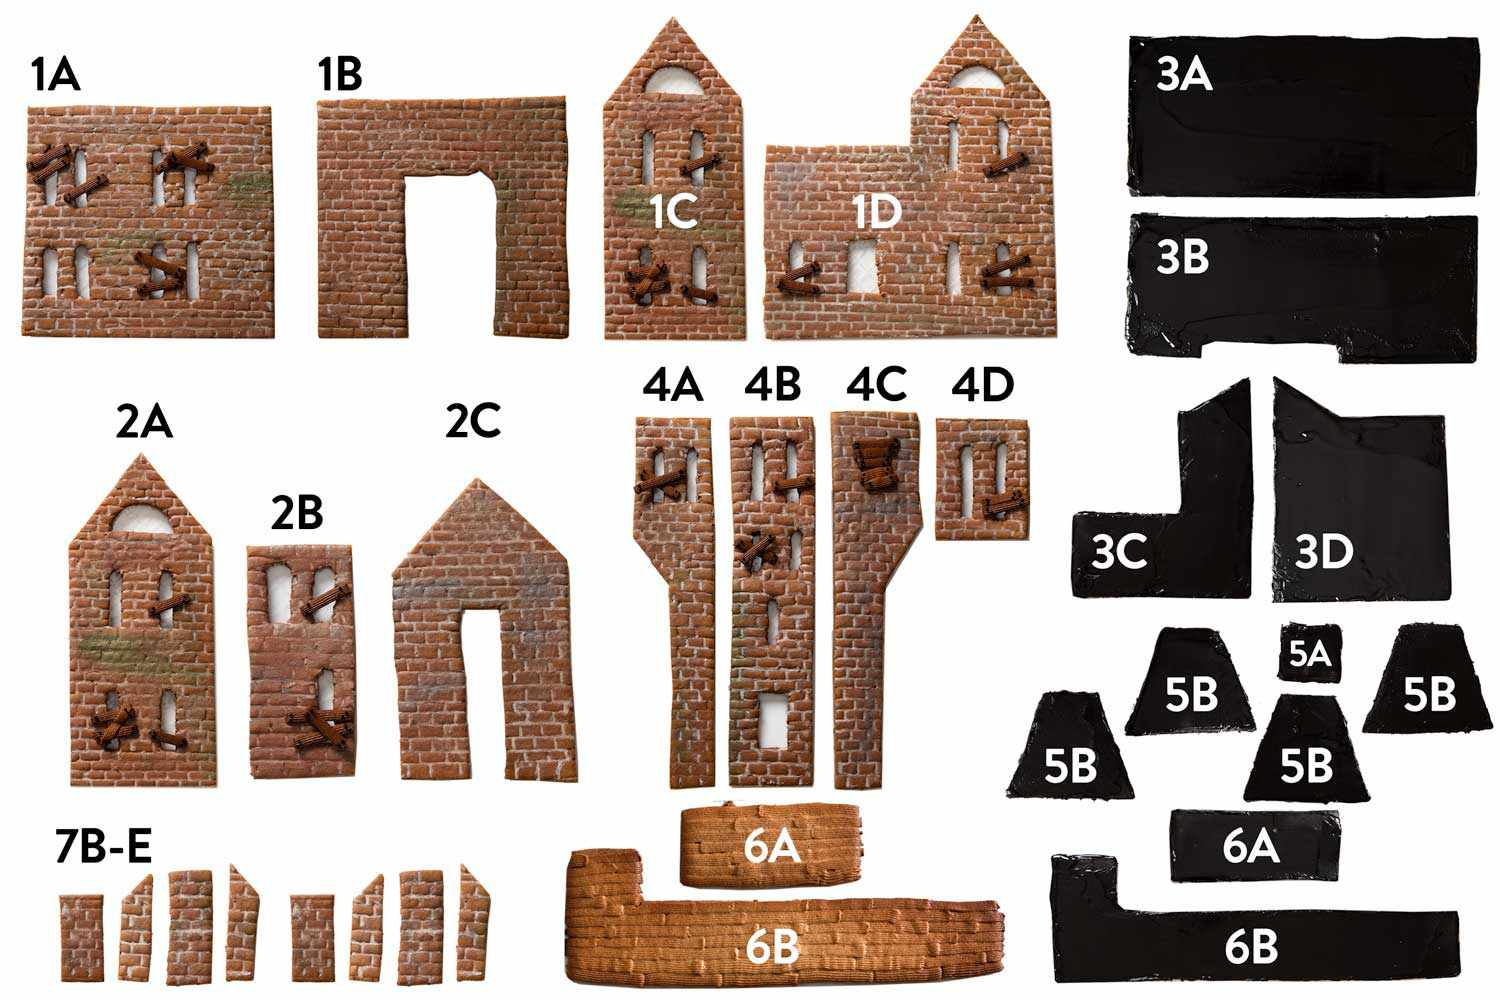 Collage of photos showing each segment of the haunted gingerbread house, with corresponding number/letter labels